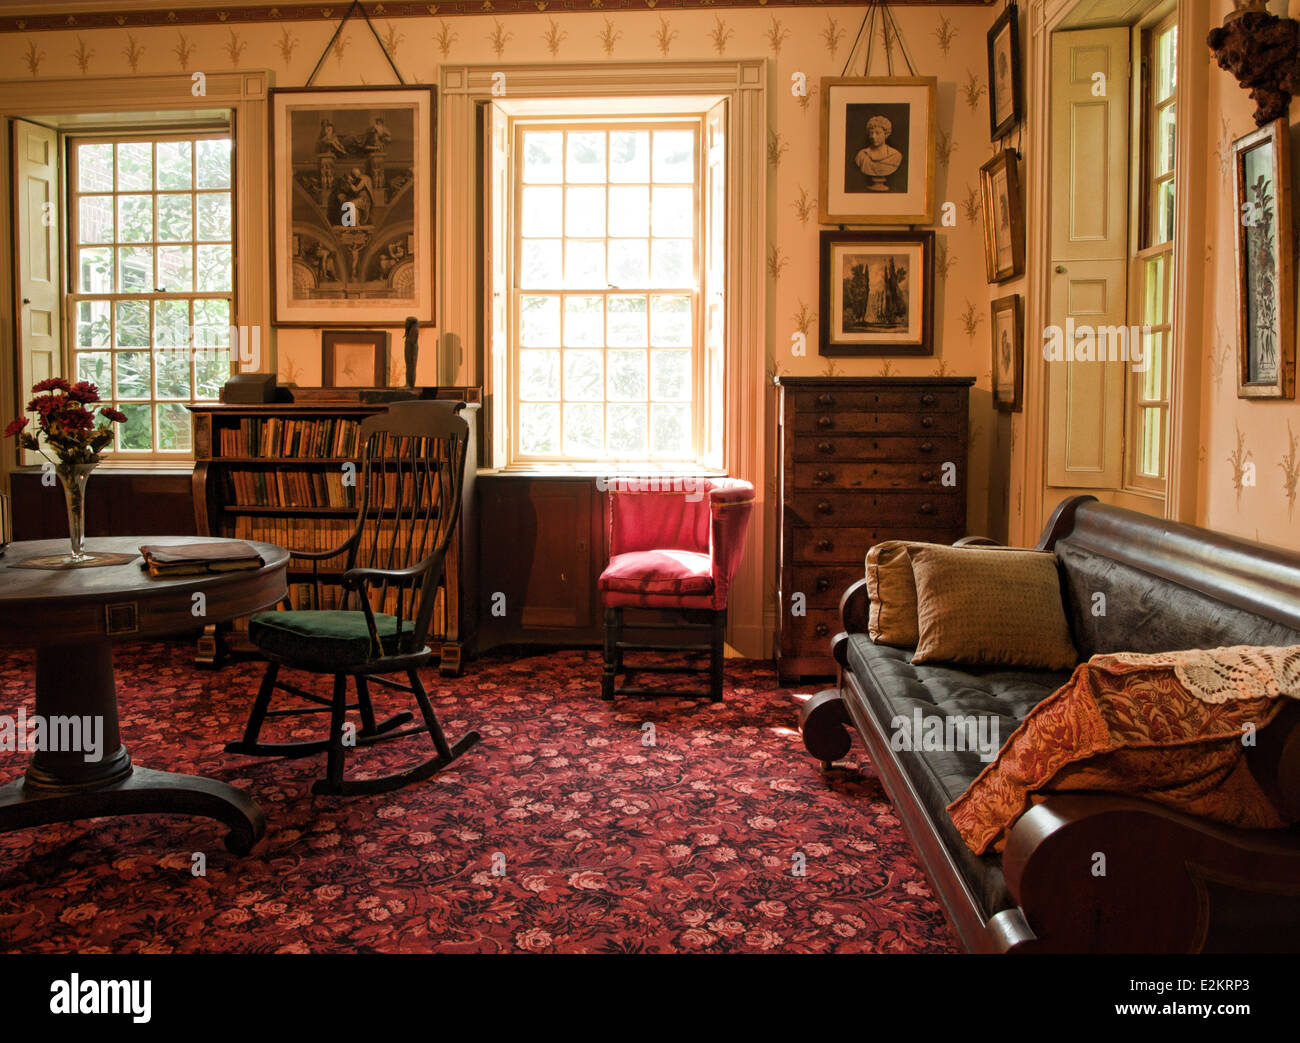 marvelous old fashioned living room | Old Fashioned Living Room | Living Room